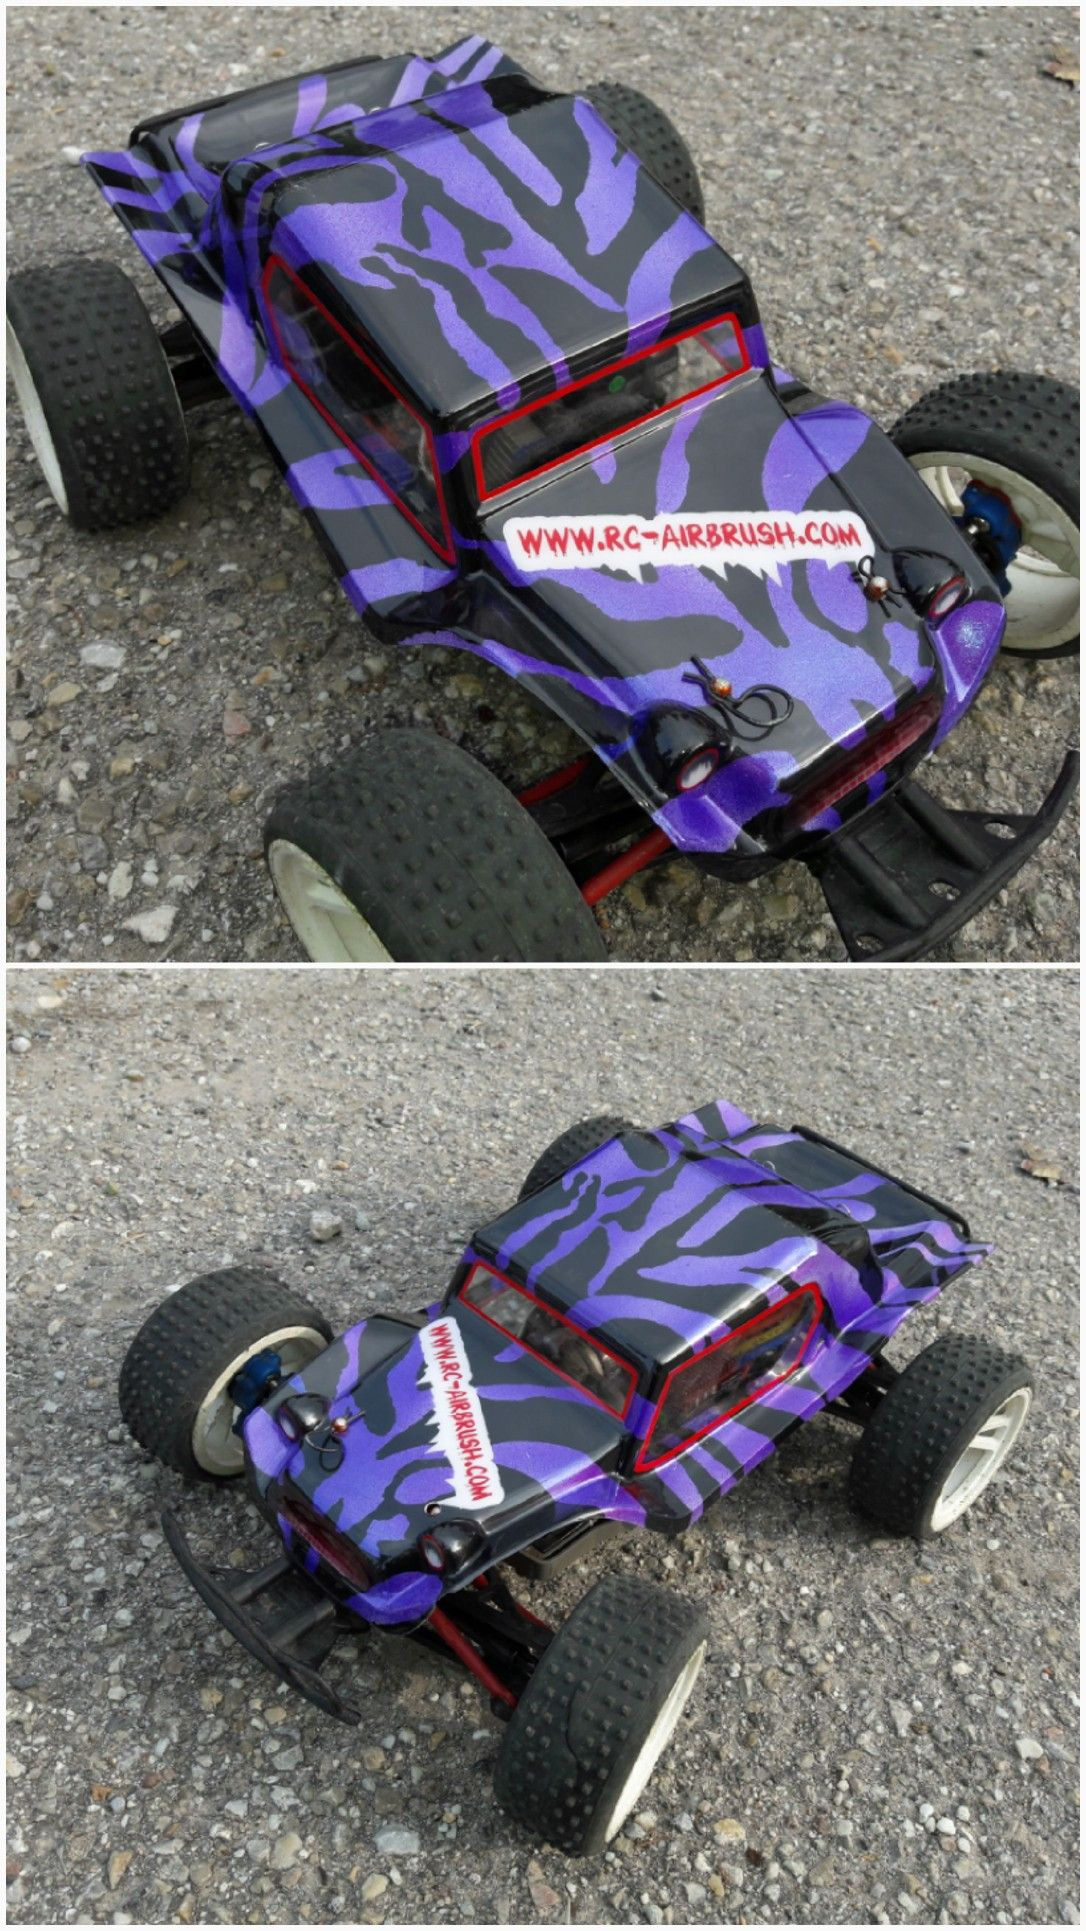 buggy Rc cars and trucks, Rc cars